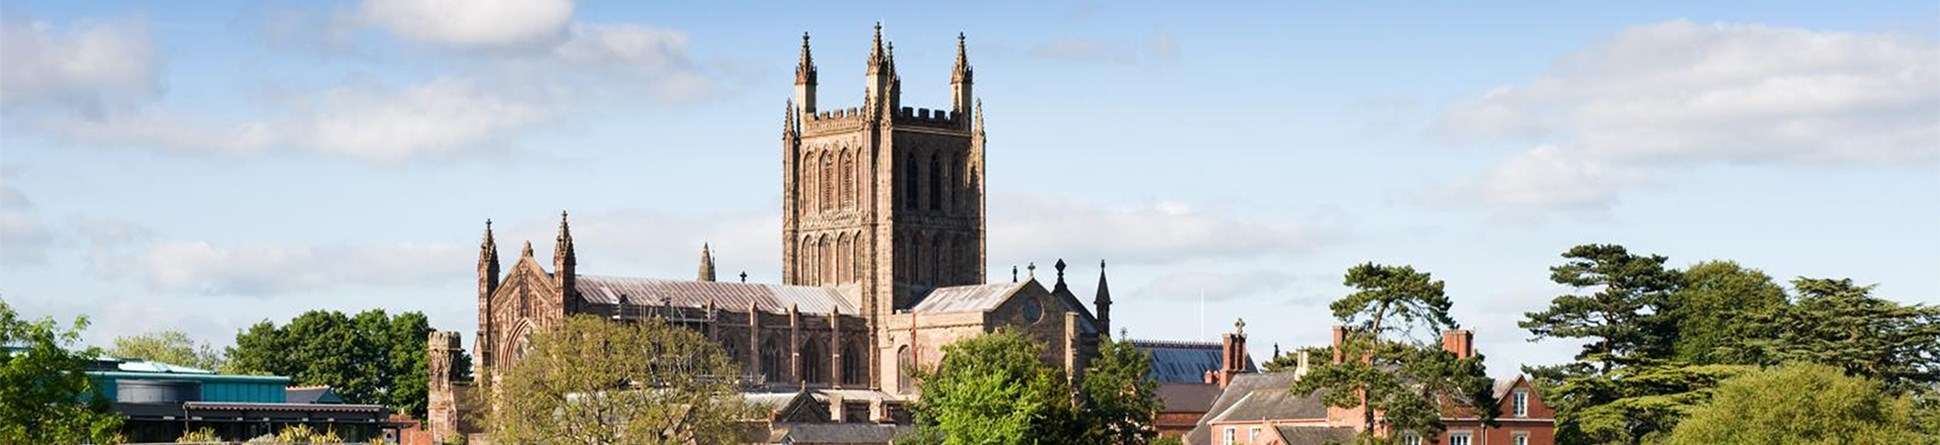 Hereford Cathedral, Hereford.  General view of cathedral.